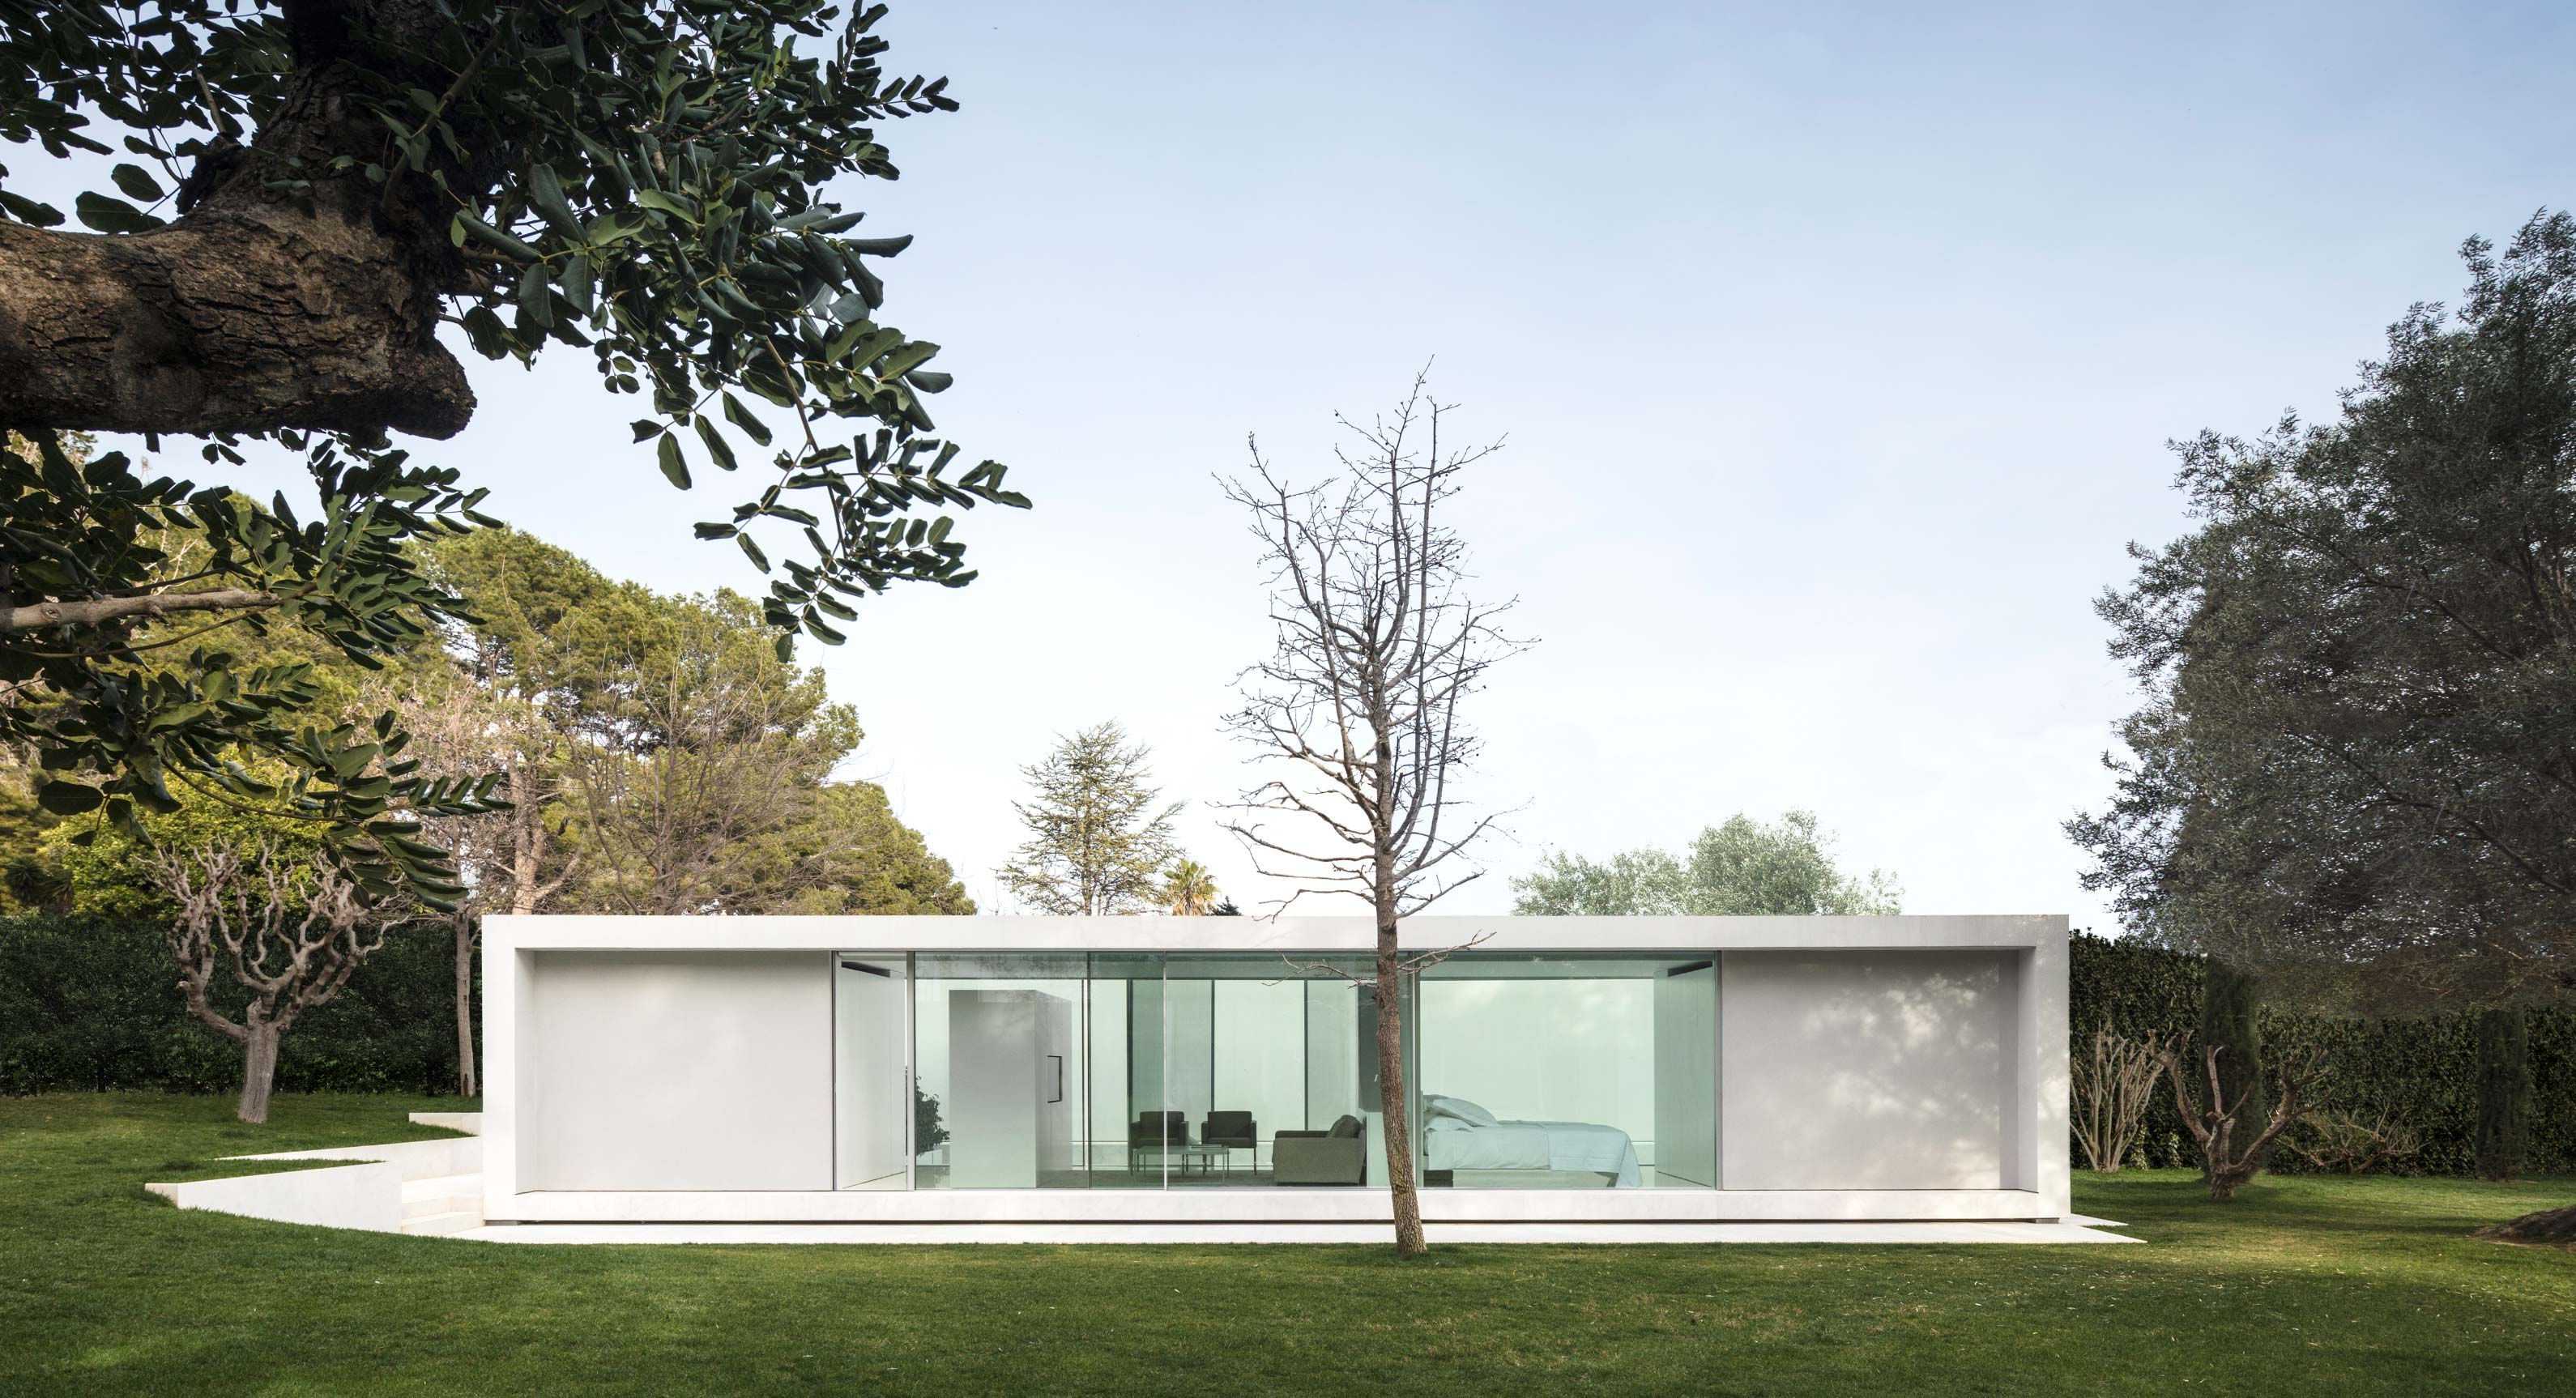 Unearth The Secrets Of Simplicity In This Minimalist Pavilion By Fran  Silvestre Arquitectos